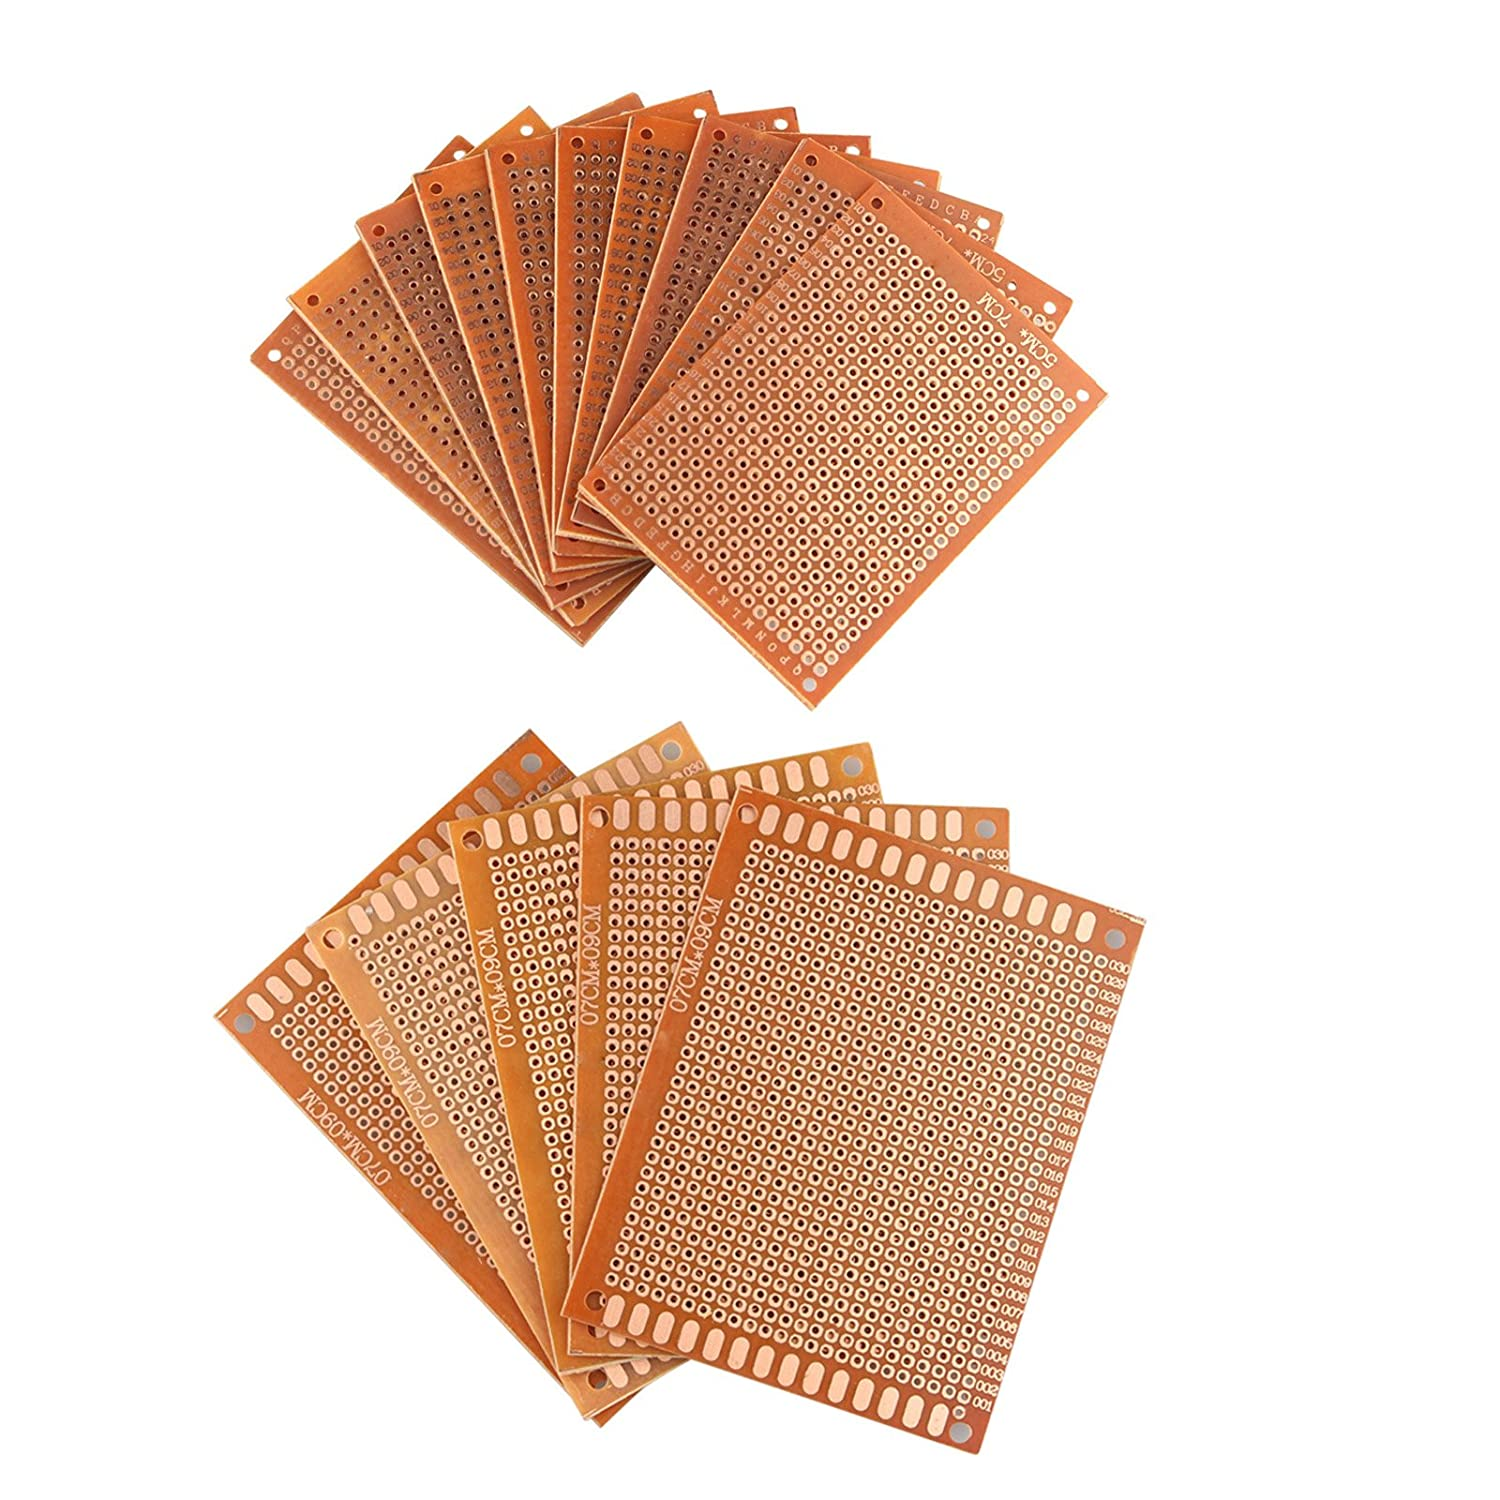 HALJIA 15 Pieces Prototype Universal PCB Circuit Board Breadboard Bakelite Single Side Copper With 5CM X 7CM And 7CM X 9CM Sizes For DIY Soldering